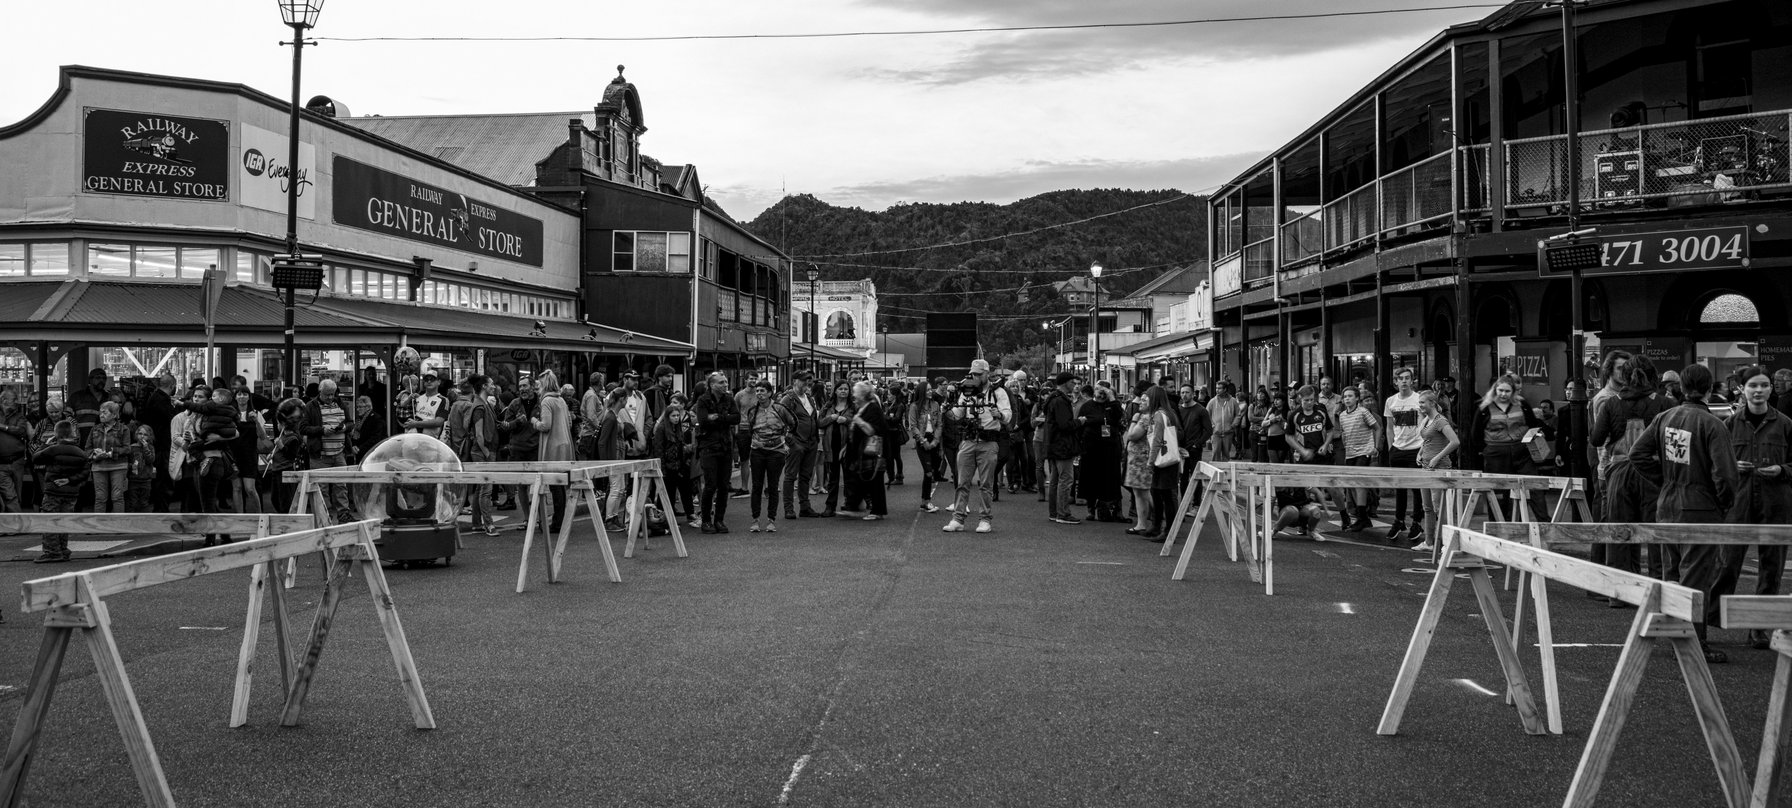 Crowds at The Unconformity 2018